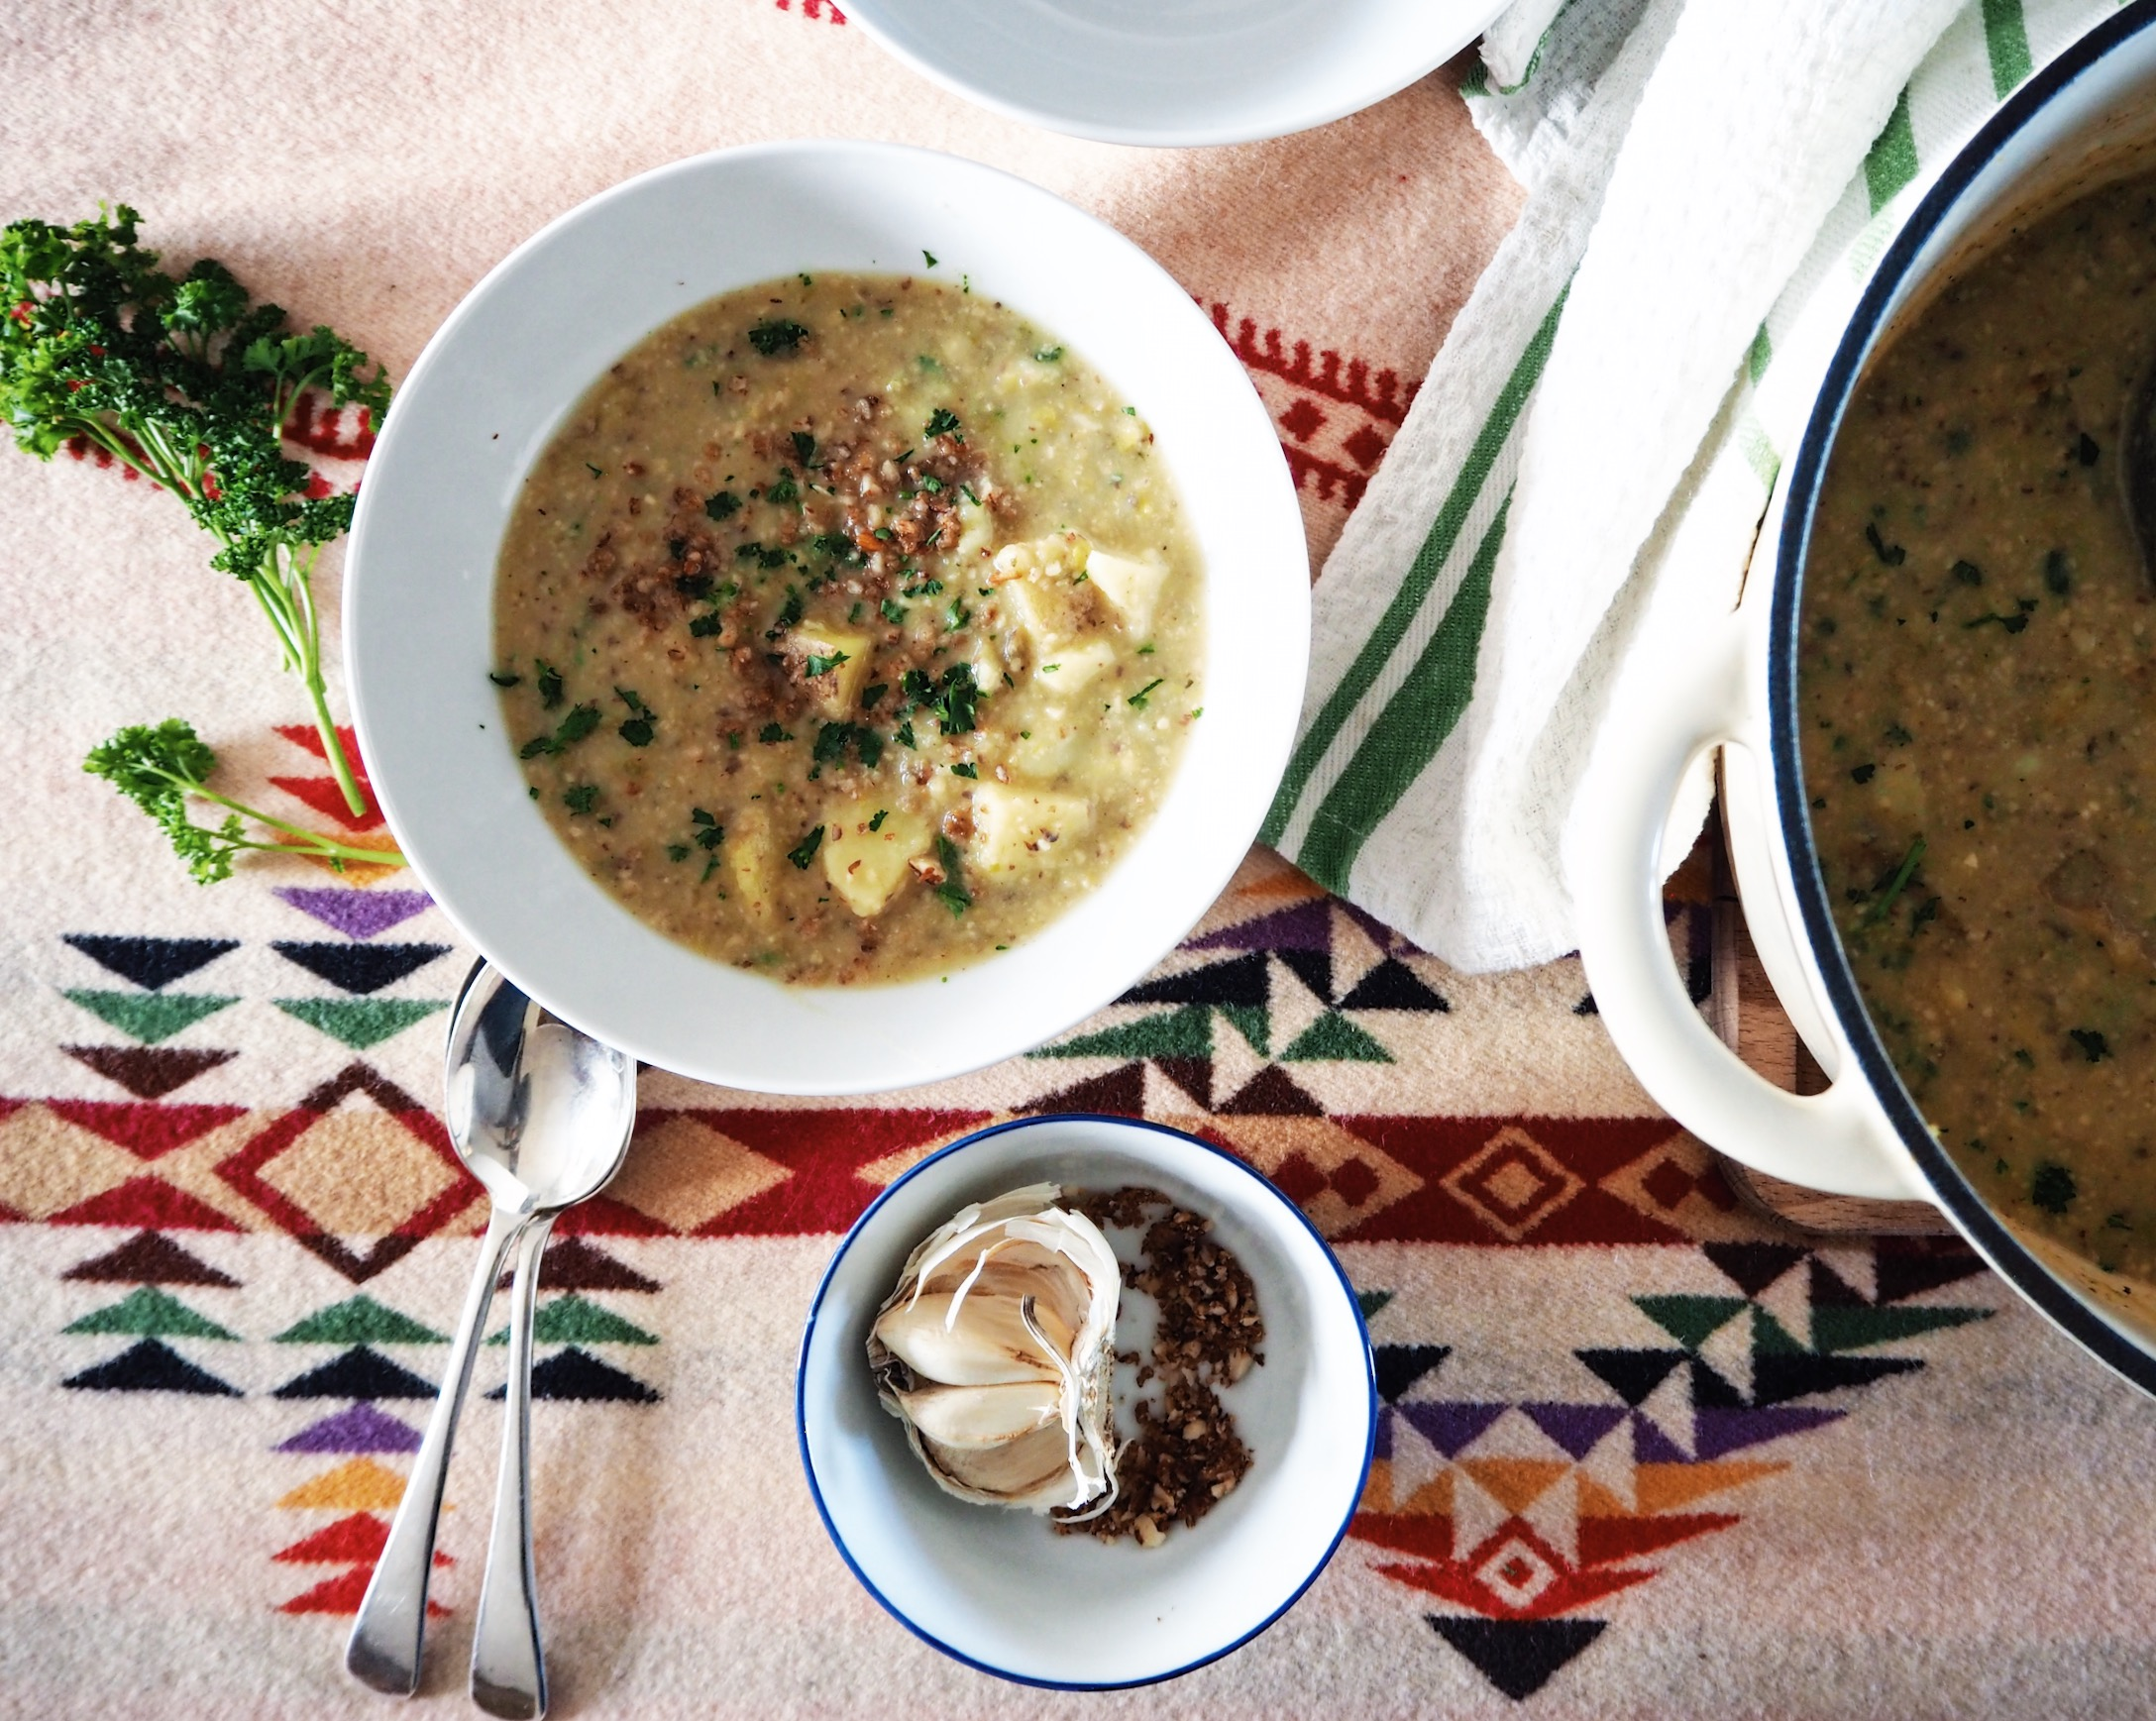 Saffron spiced potato, leek and almond soup | The Naturalista